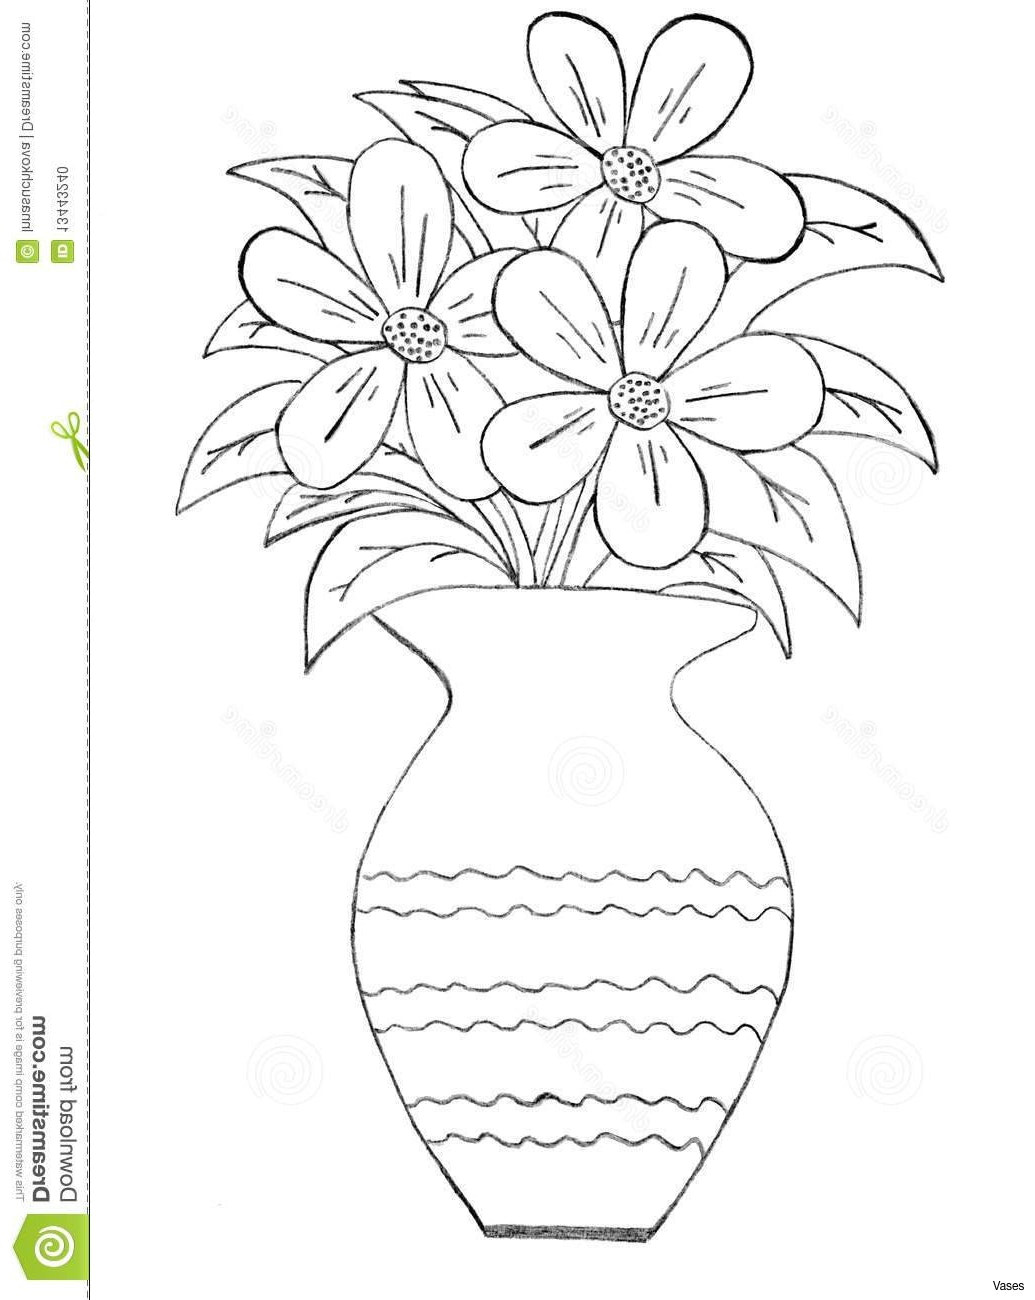 flower vase watercolor of flower drawing steps at getdrawings com free for personal use regarding 1035x1300 how to draw a vase step 2h vases by stepi 0d vise drawing